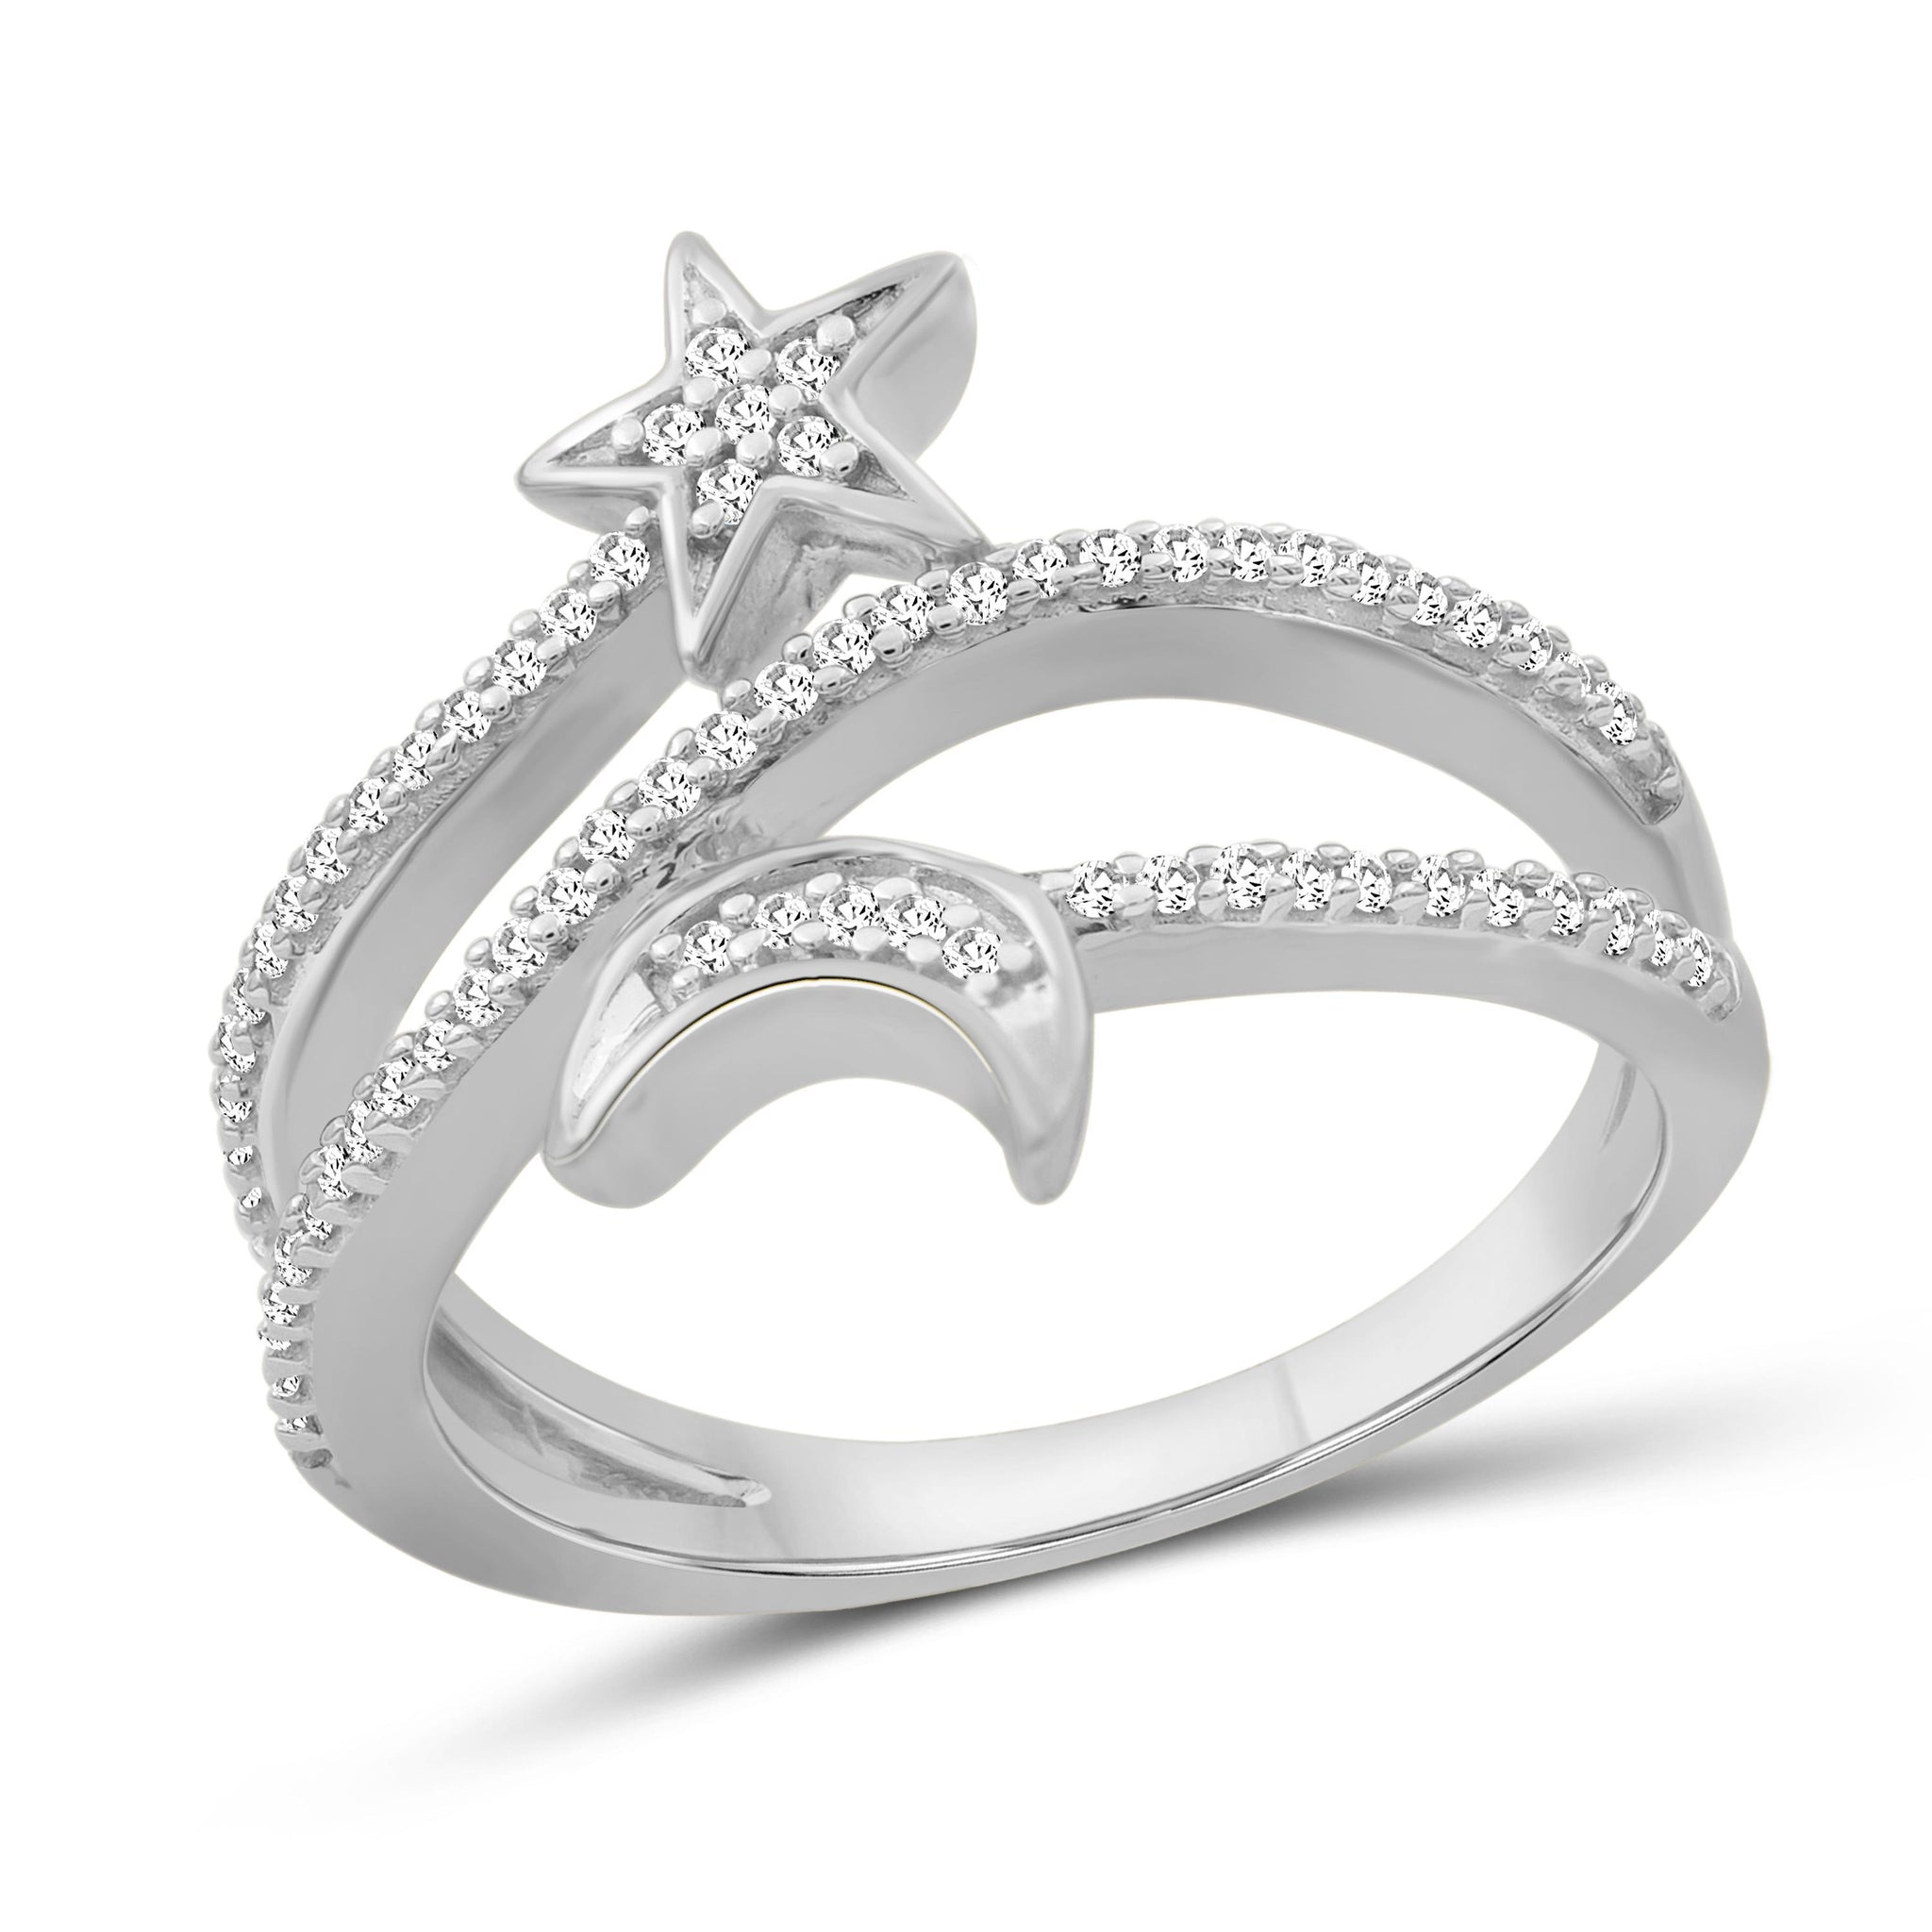 JewelonFire 1/4 Carat T.W. White Diamond Sterling Silver Star & Moon Ring - Assorted Colors